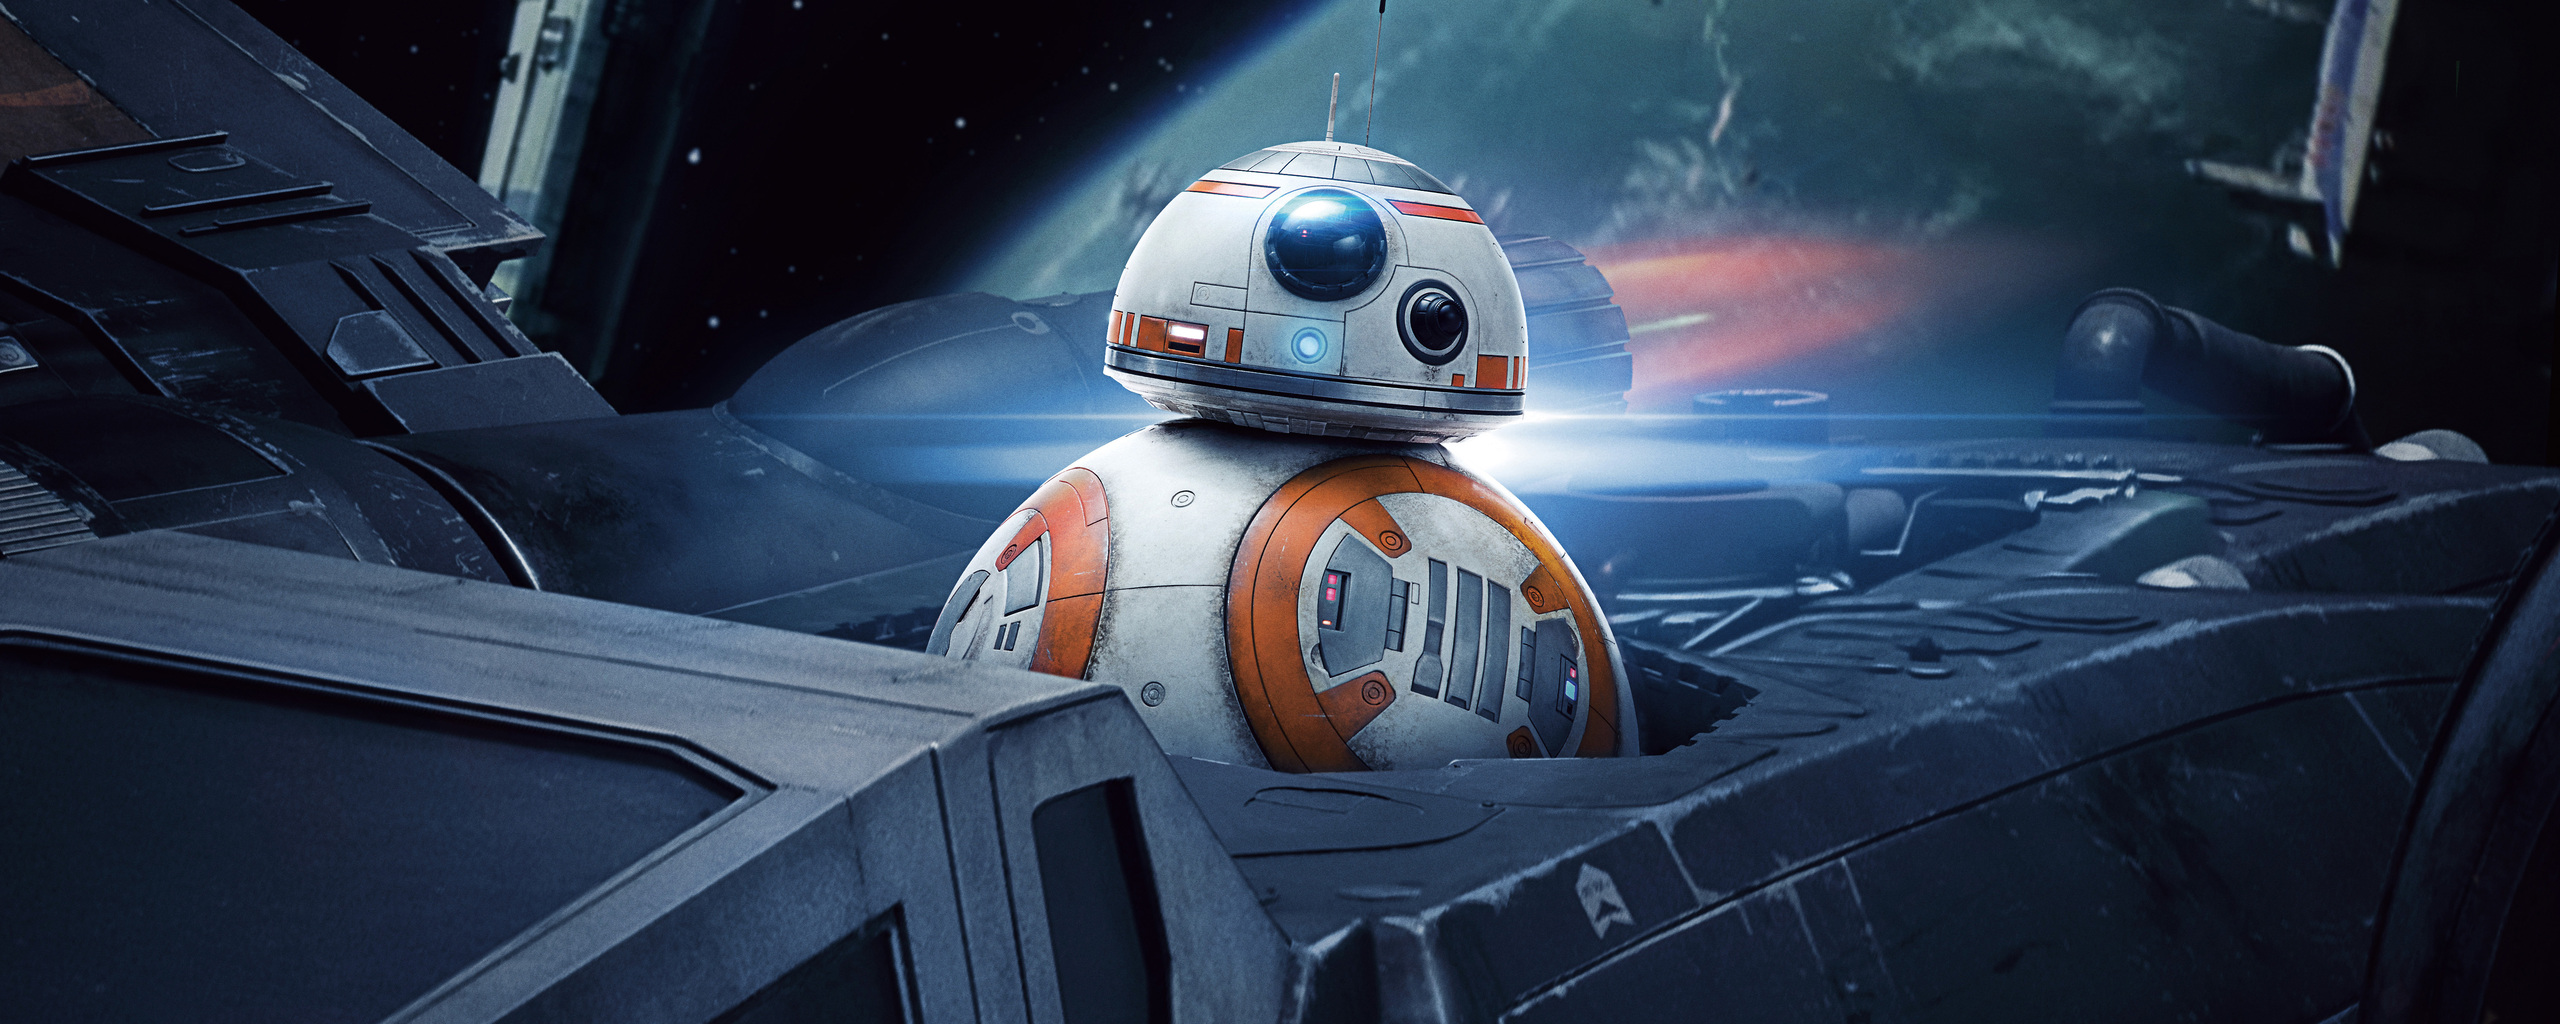 r2-d2-in-star-wars-the-last-jedi-5k-js.jpg